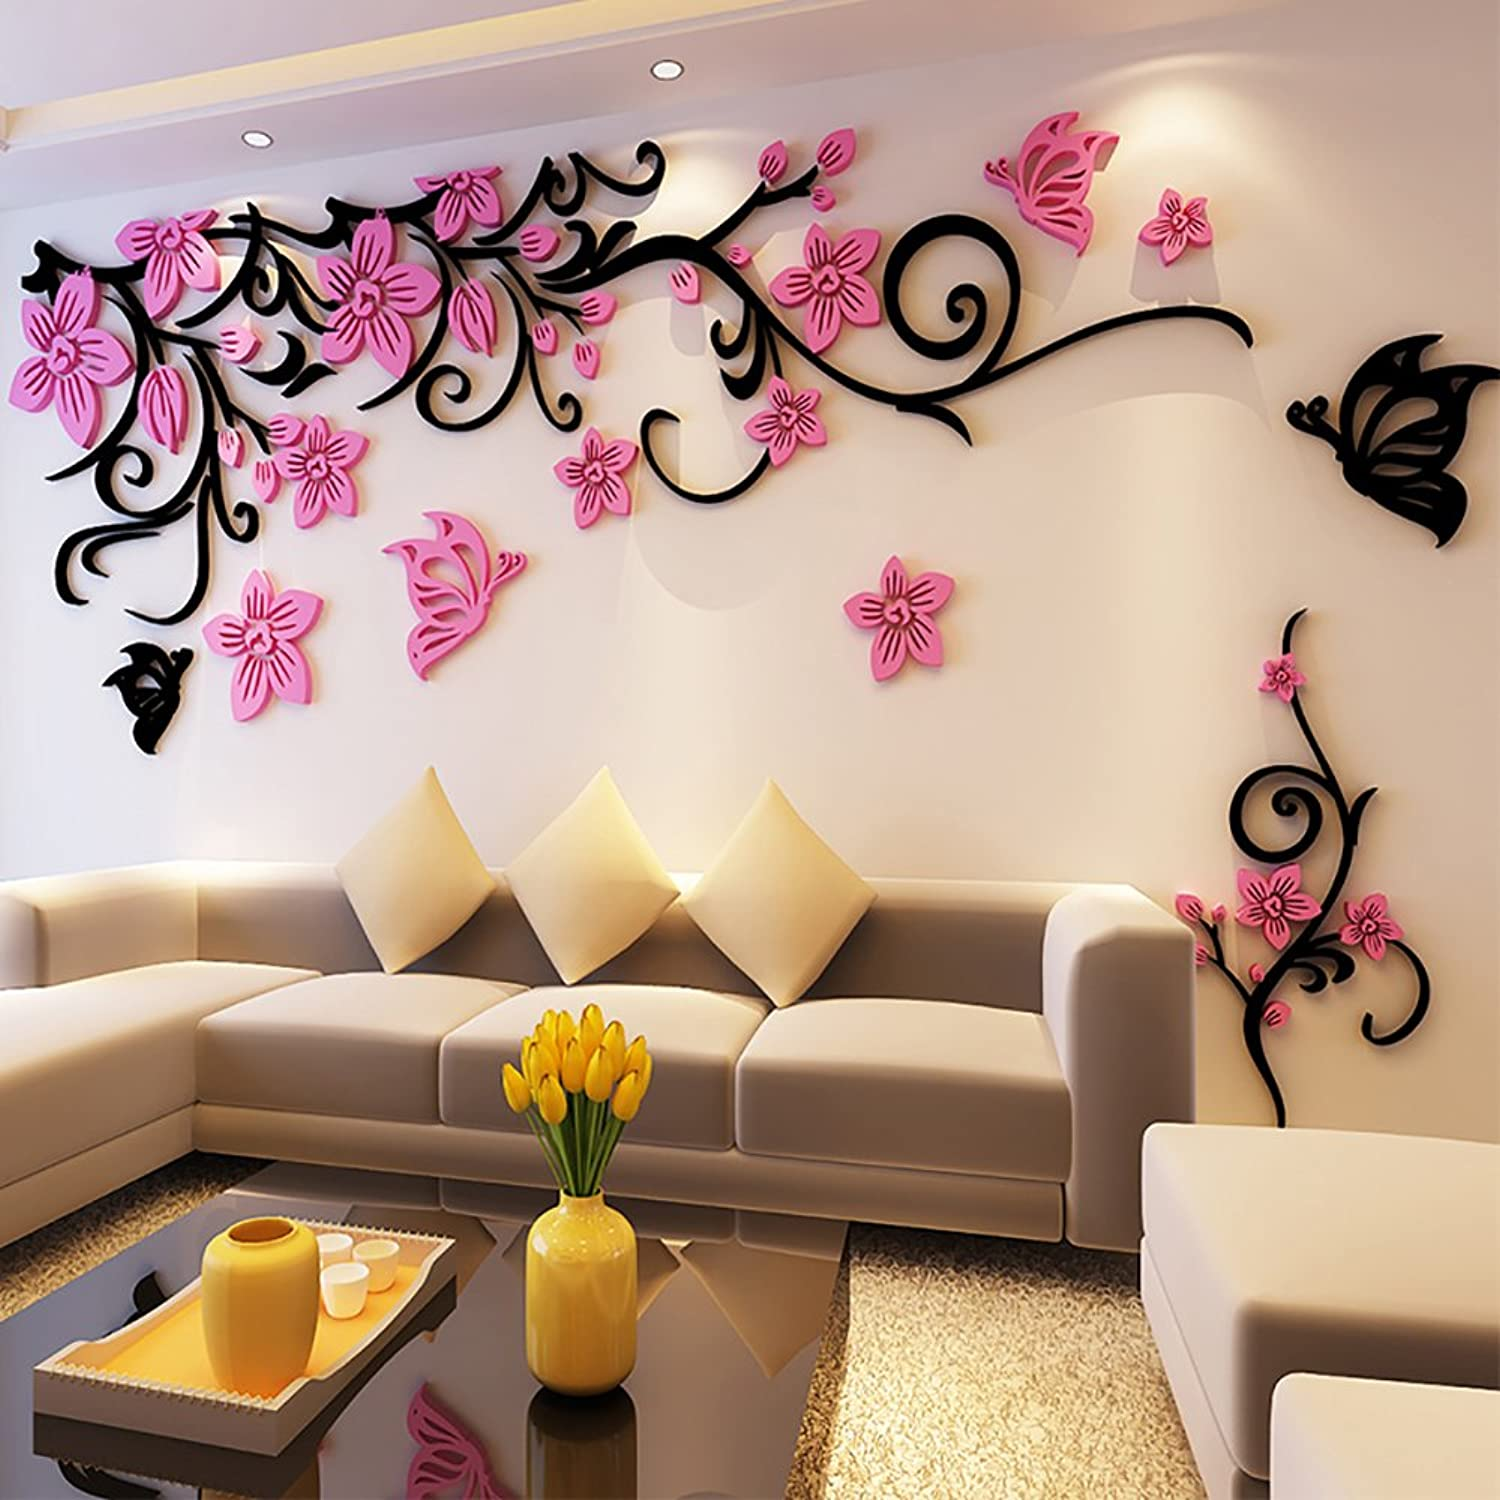 Tickos DIY Flower Wall Stickers 3D Acrylic wall decals Beautiful Murals (PinkL, L)